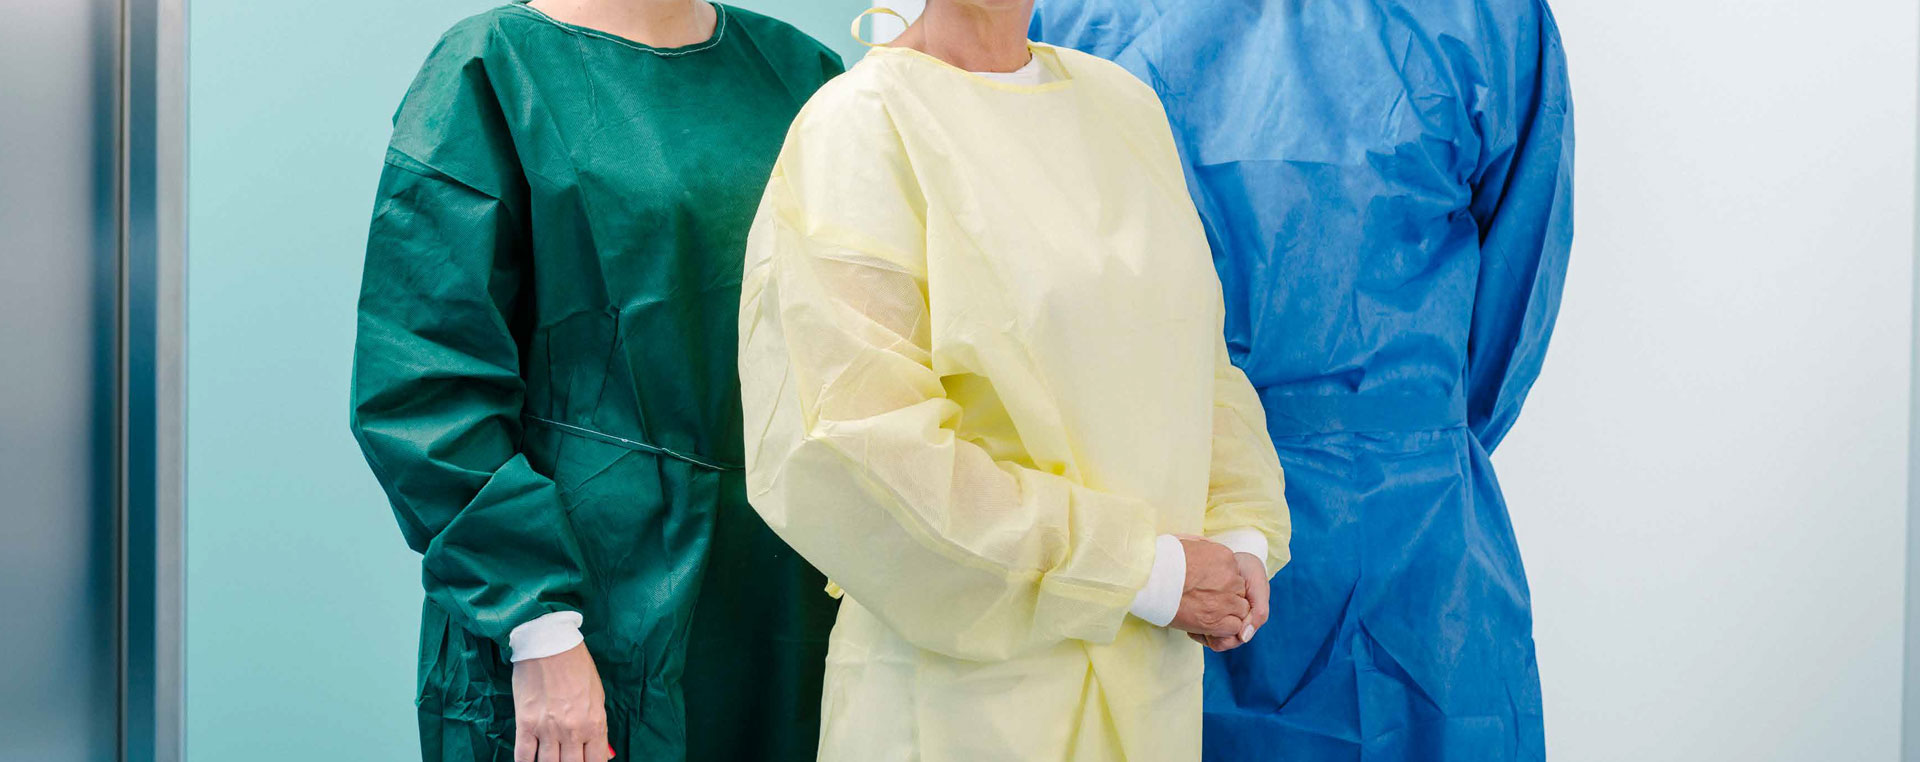 Patient and visitor´s gown